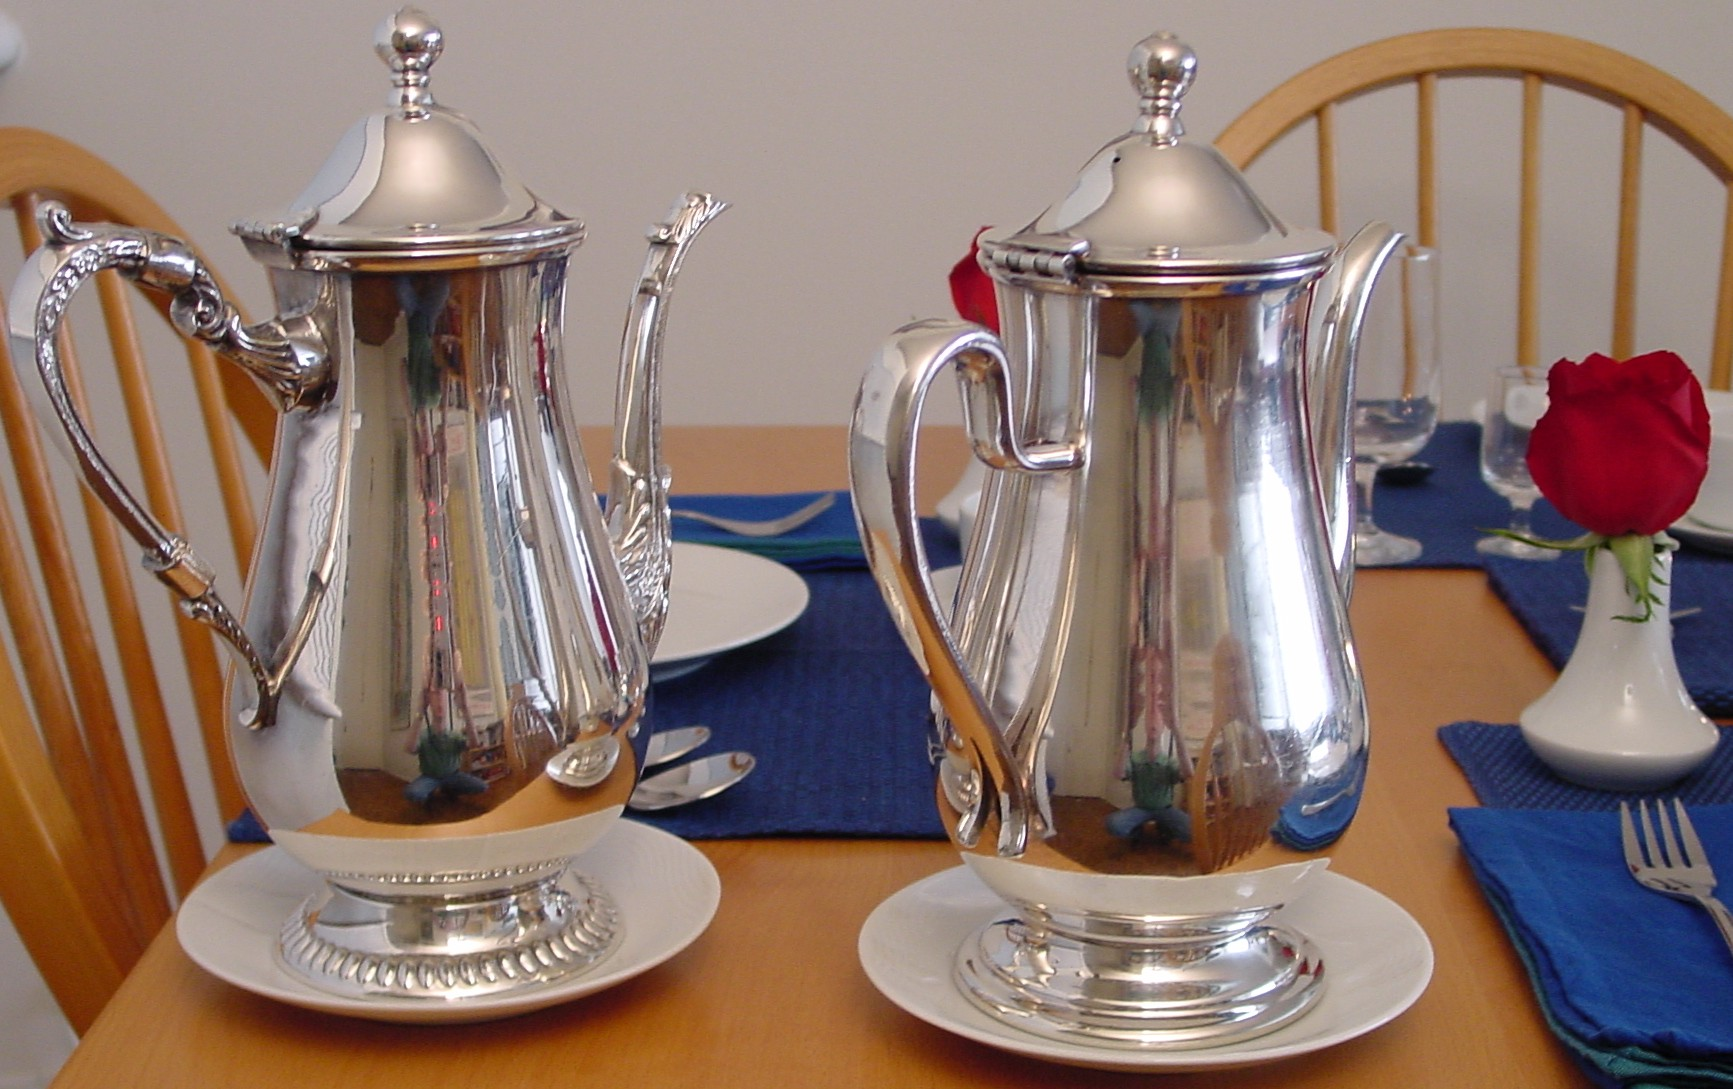 Silver plate coffee pots from the 1980s are shown on the table.